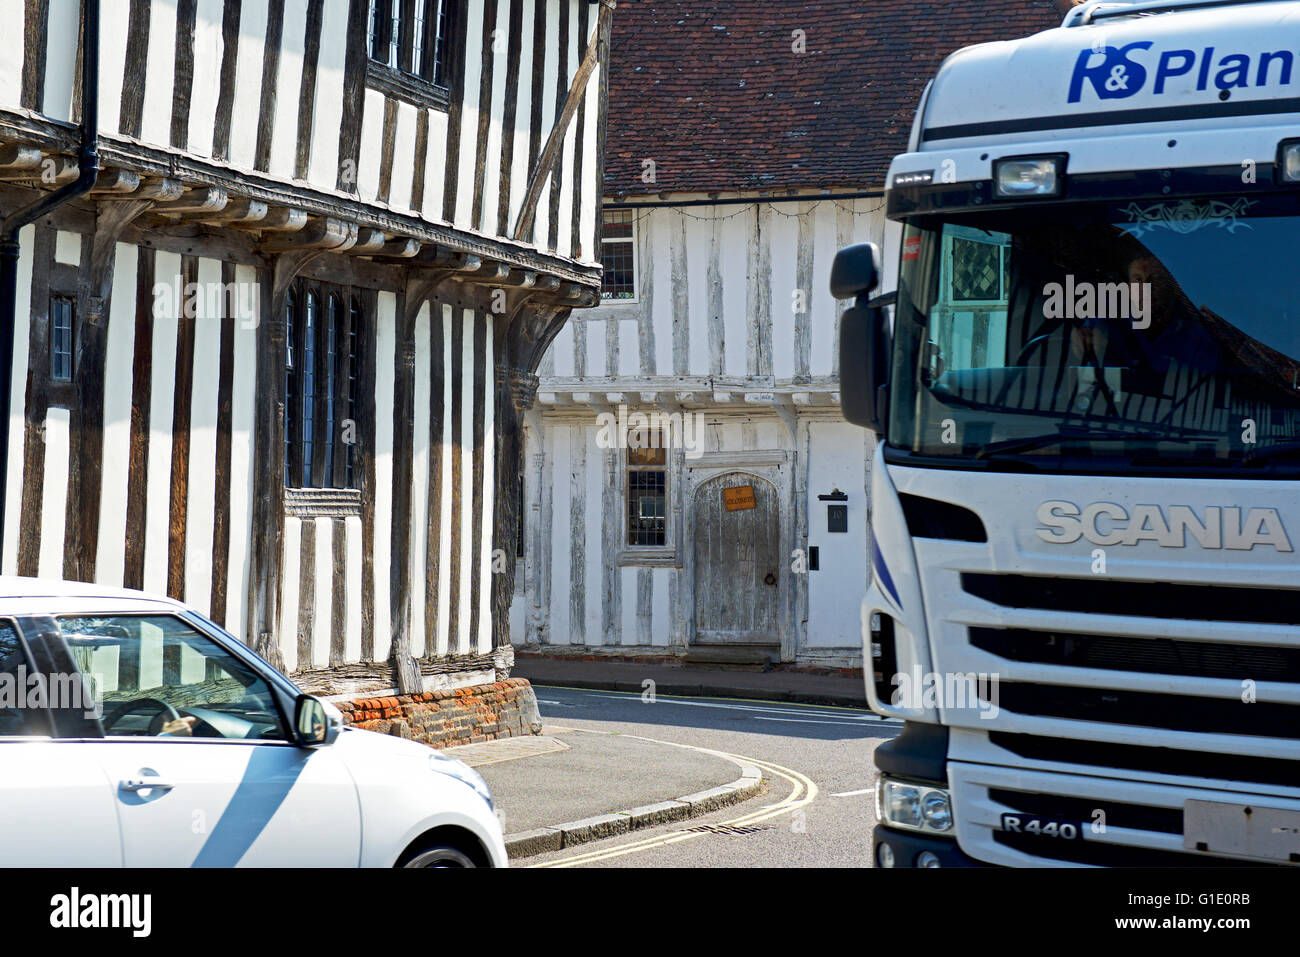 Car and lorry in the village of Lavenham, Suffolk, England UK - Stock Image